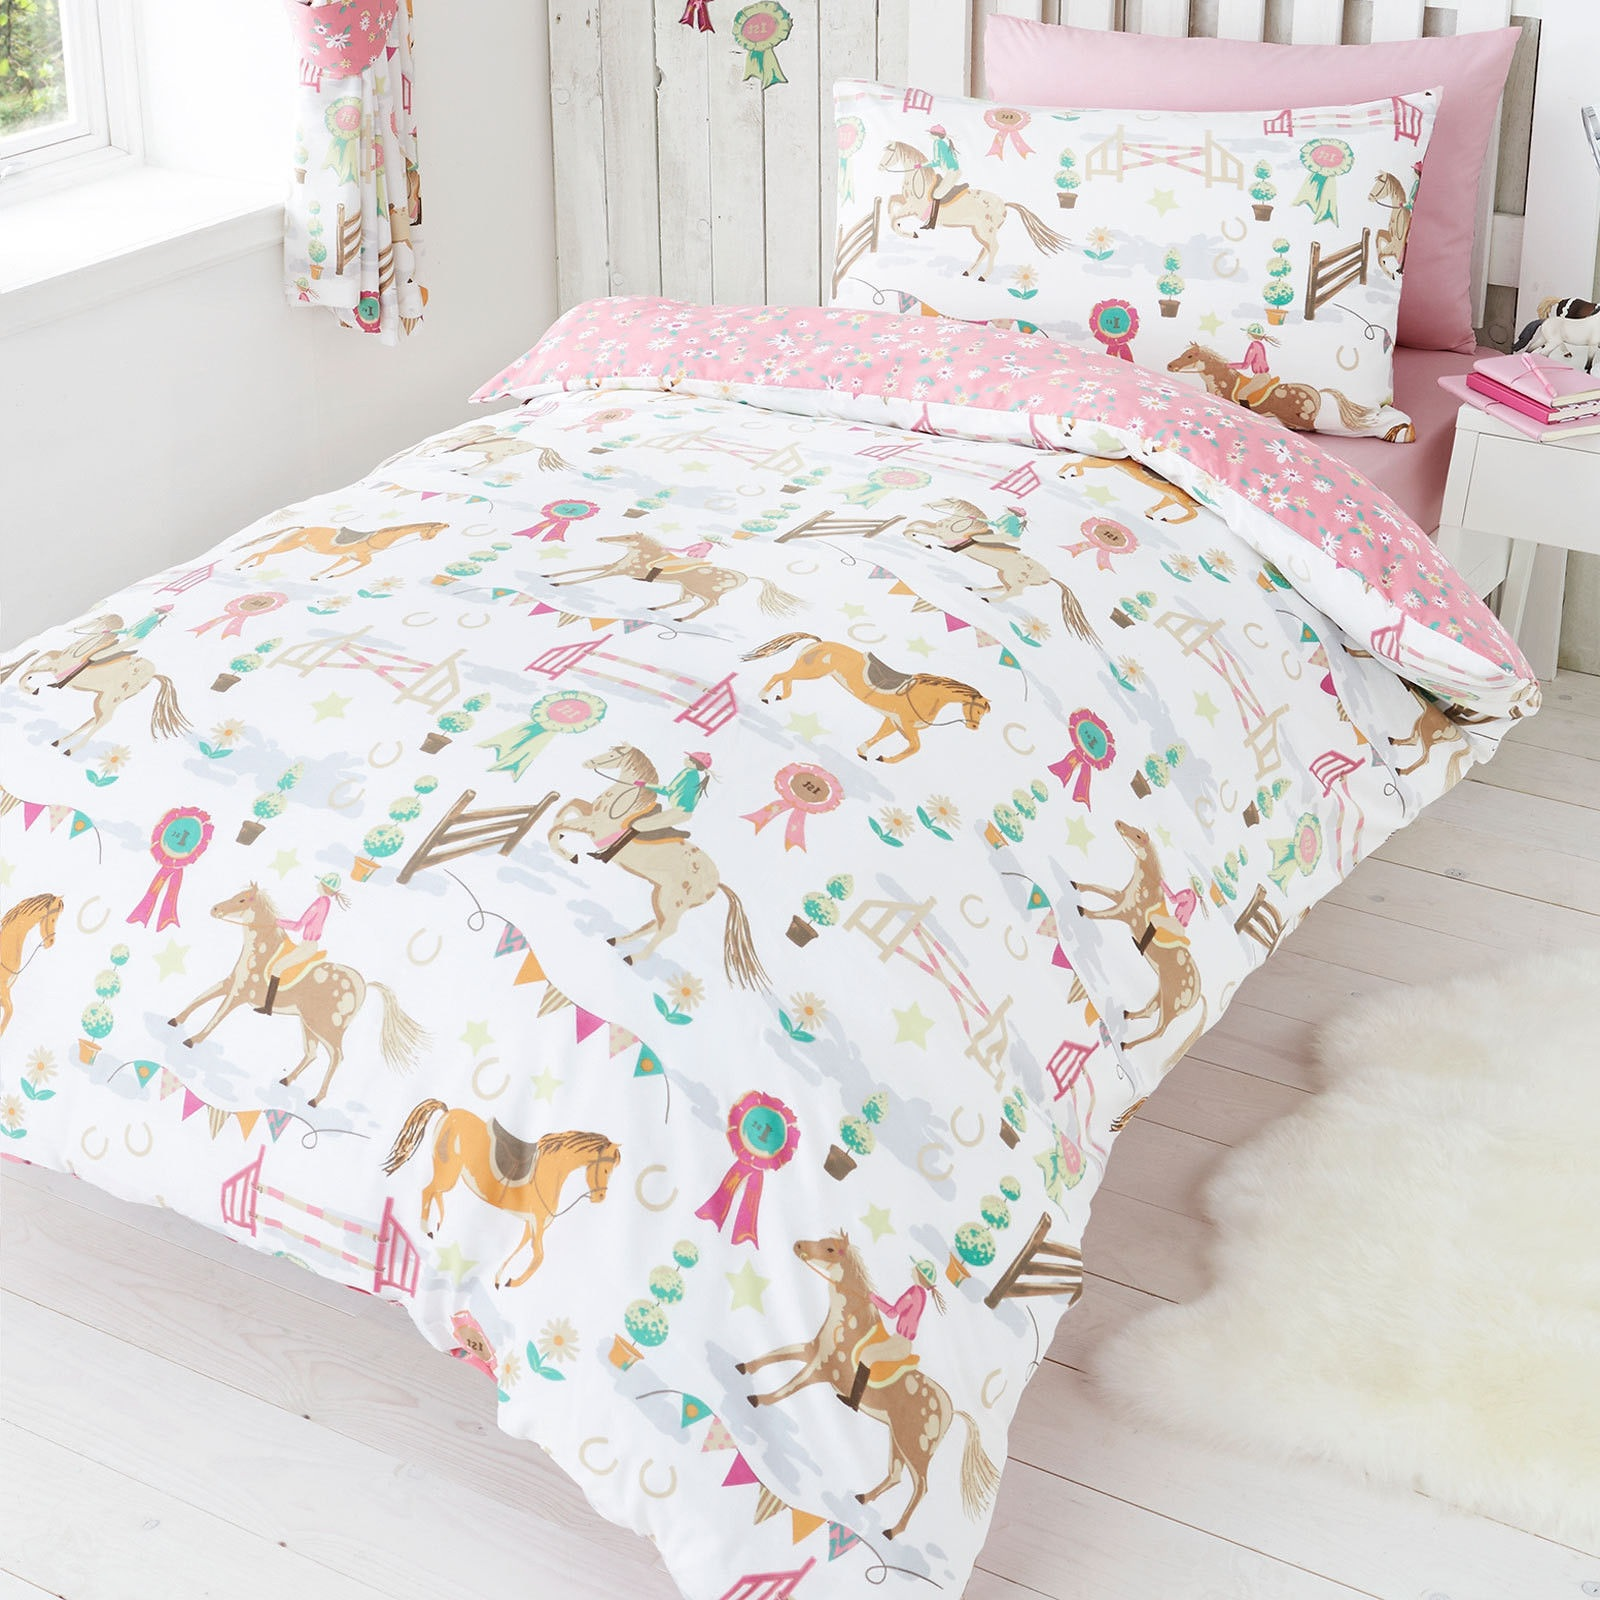 Horse Pony Jumping Show Time Duvet Quilt Cover Daisy Prize